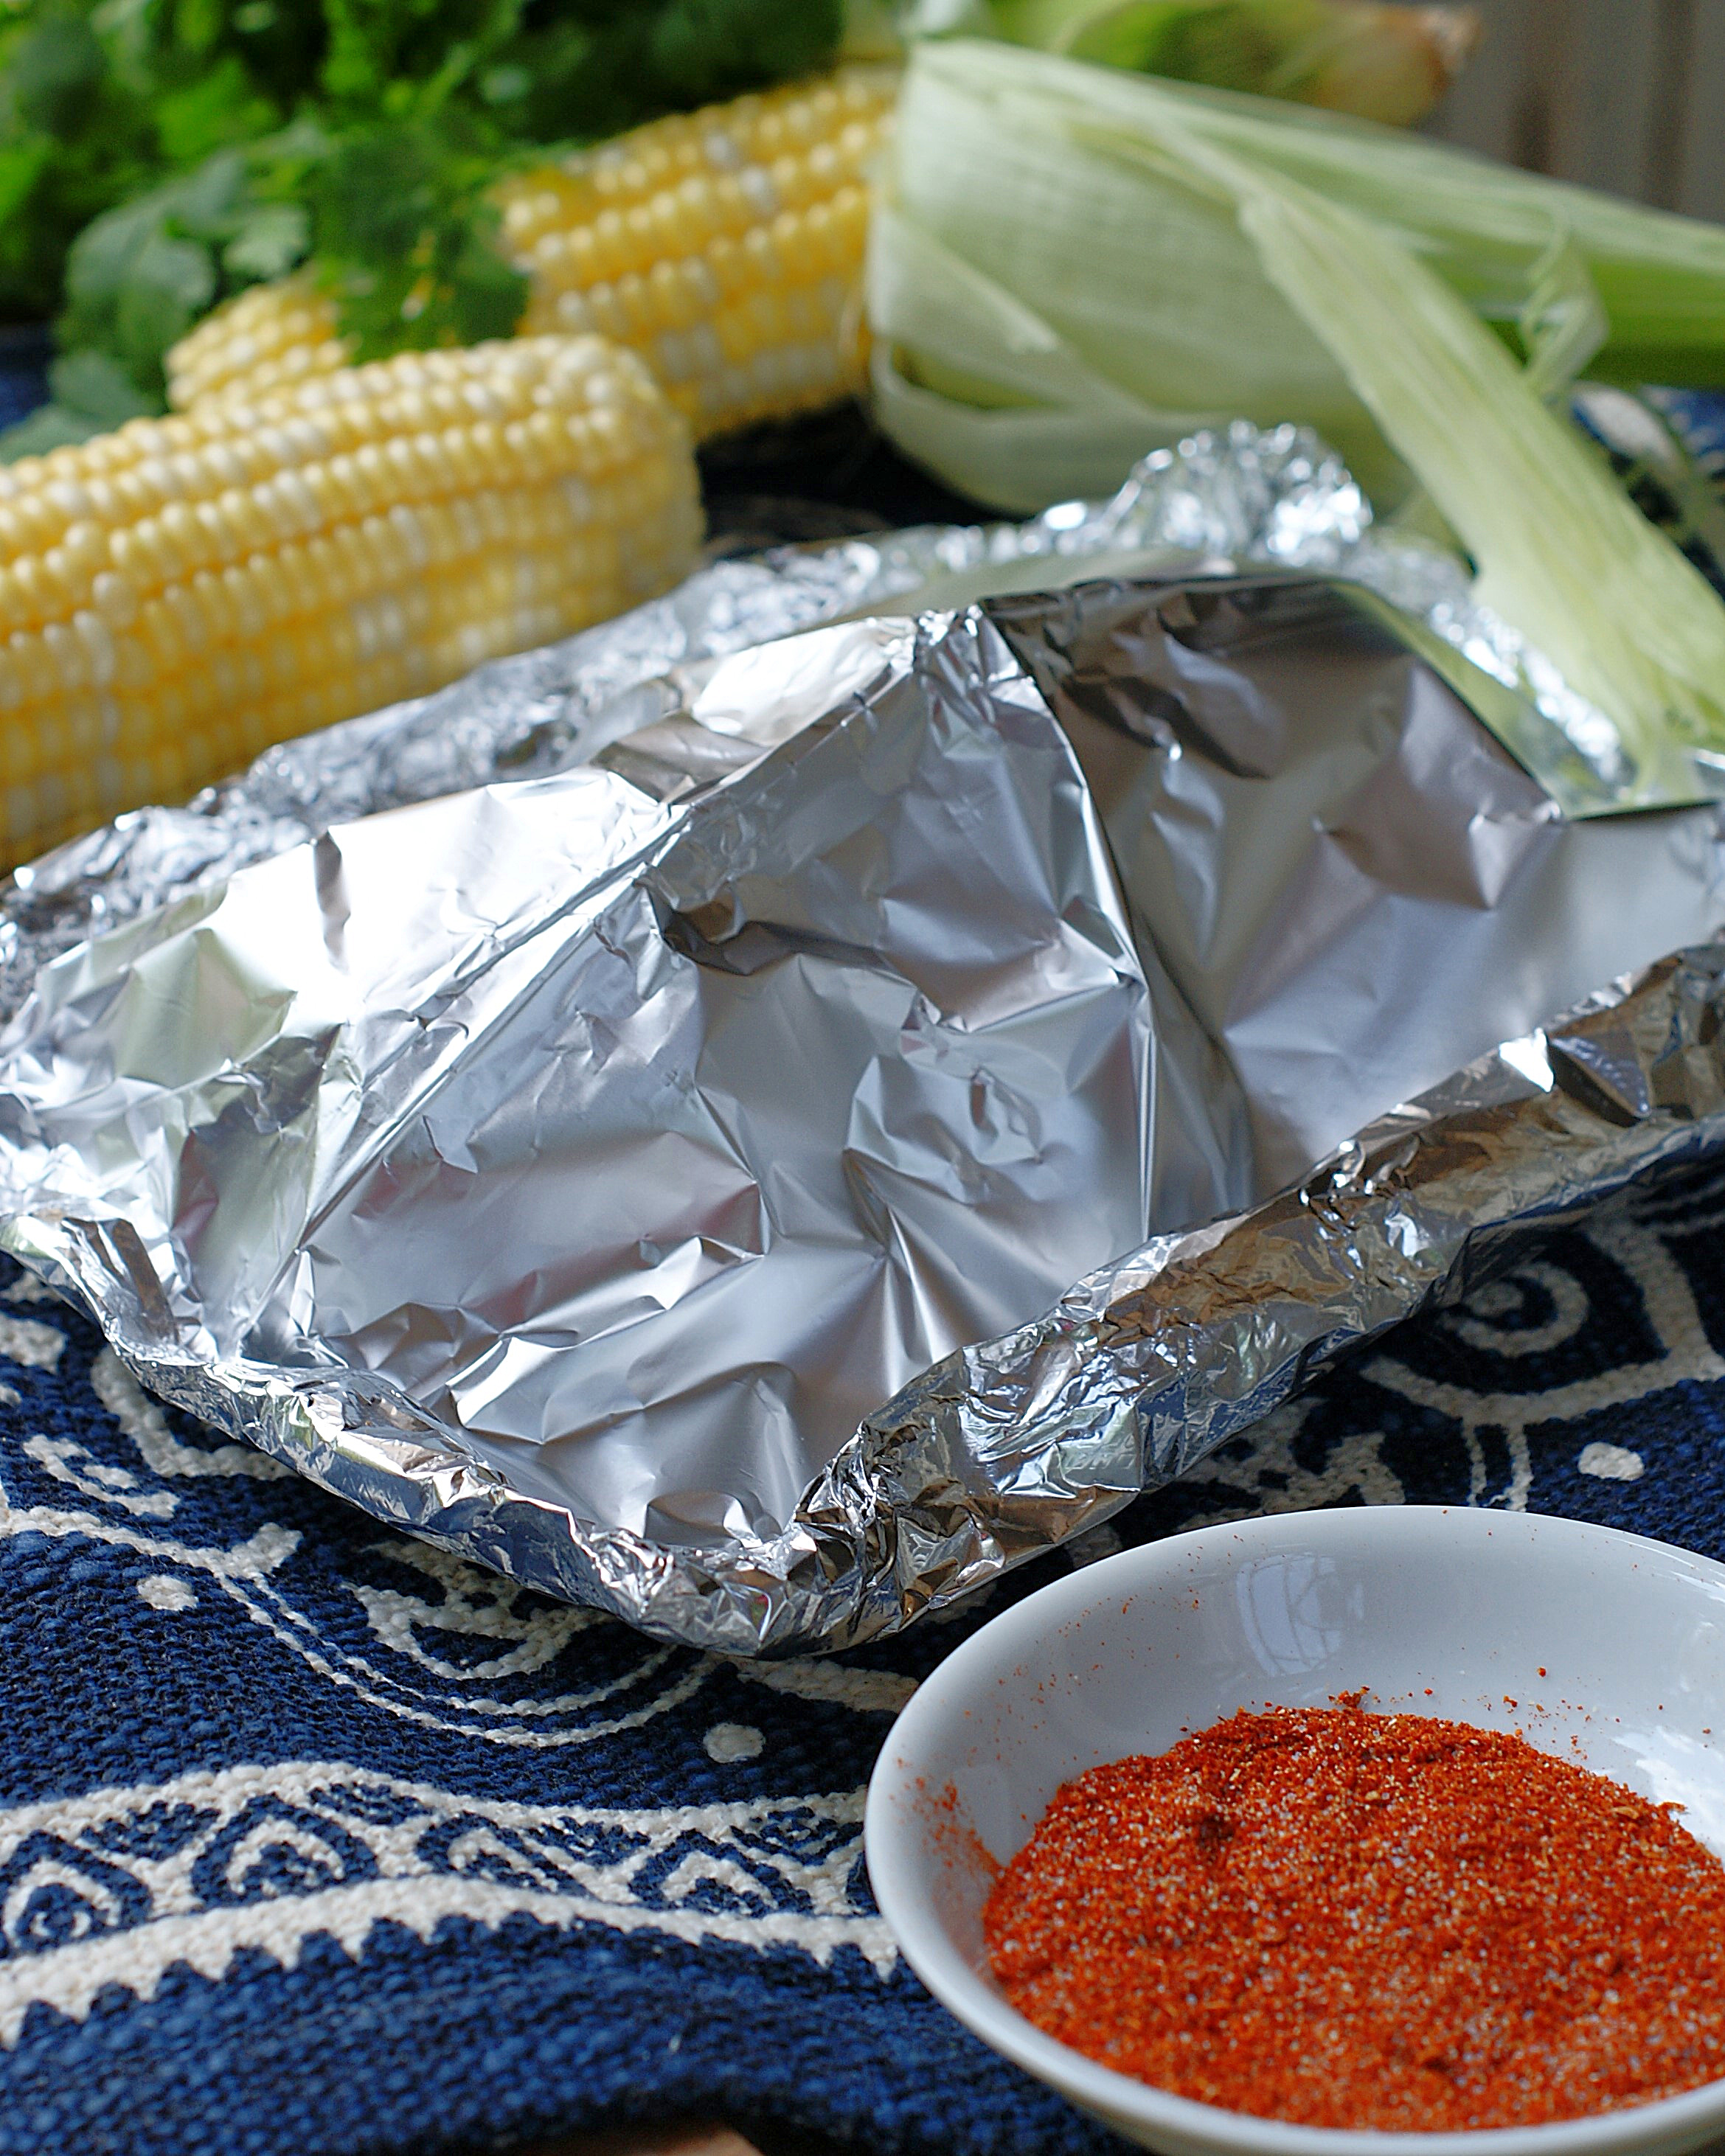 A tented foil packet for baking or grilling Mexican Street Corn.